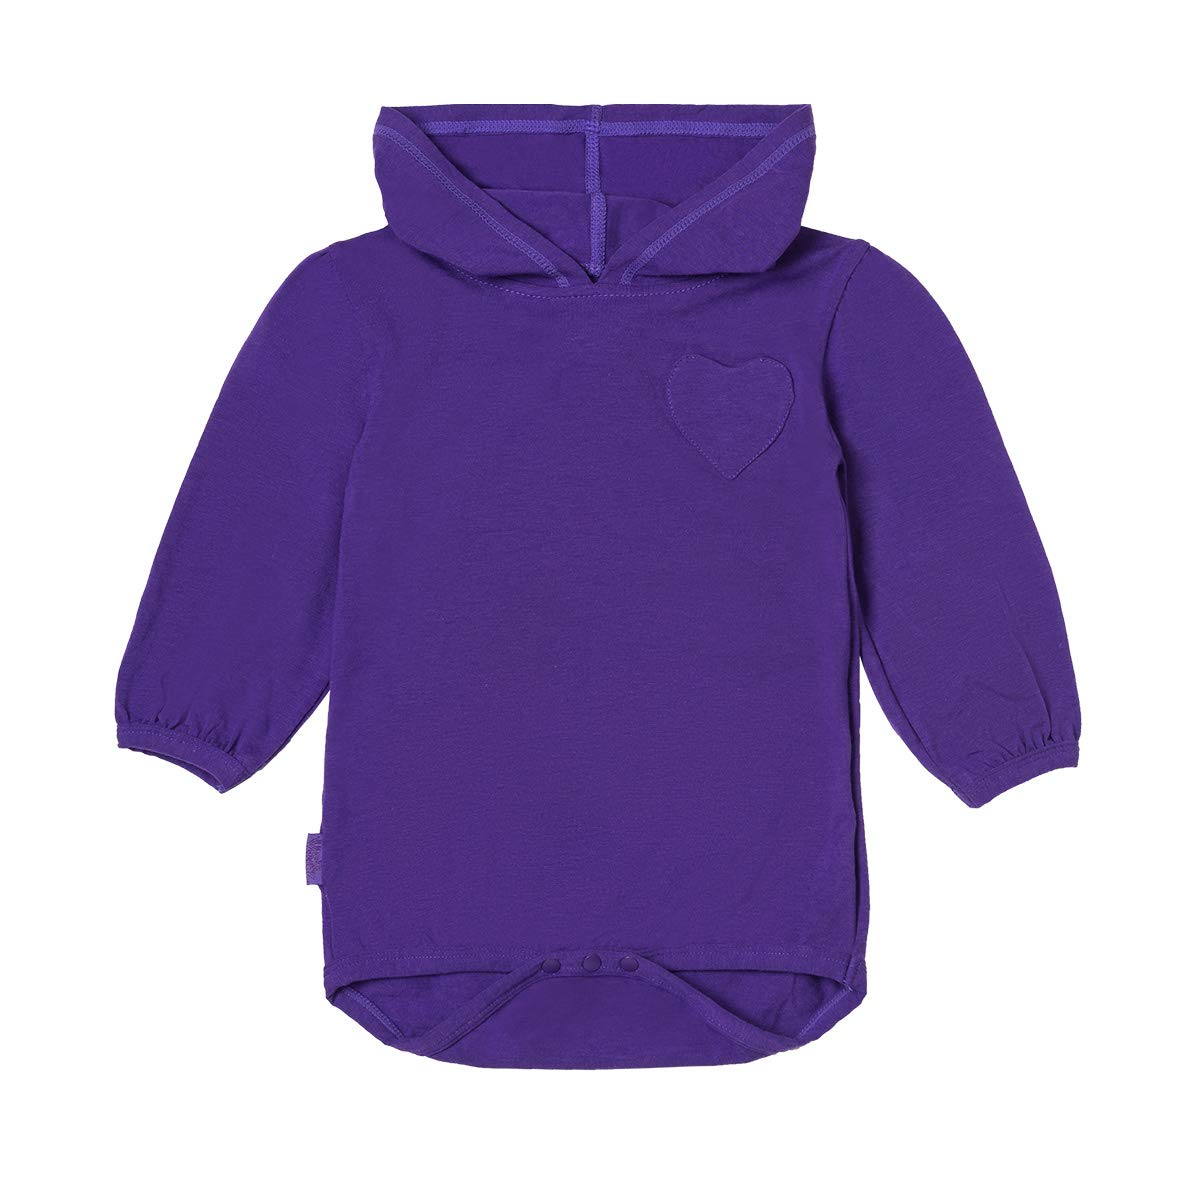 UPF 50 Protection UV Skinz Baby Girl Hooded Sunzie Comfortable Bamboo Knit